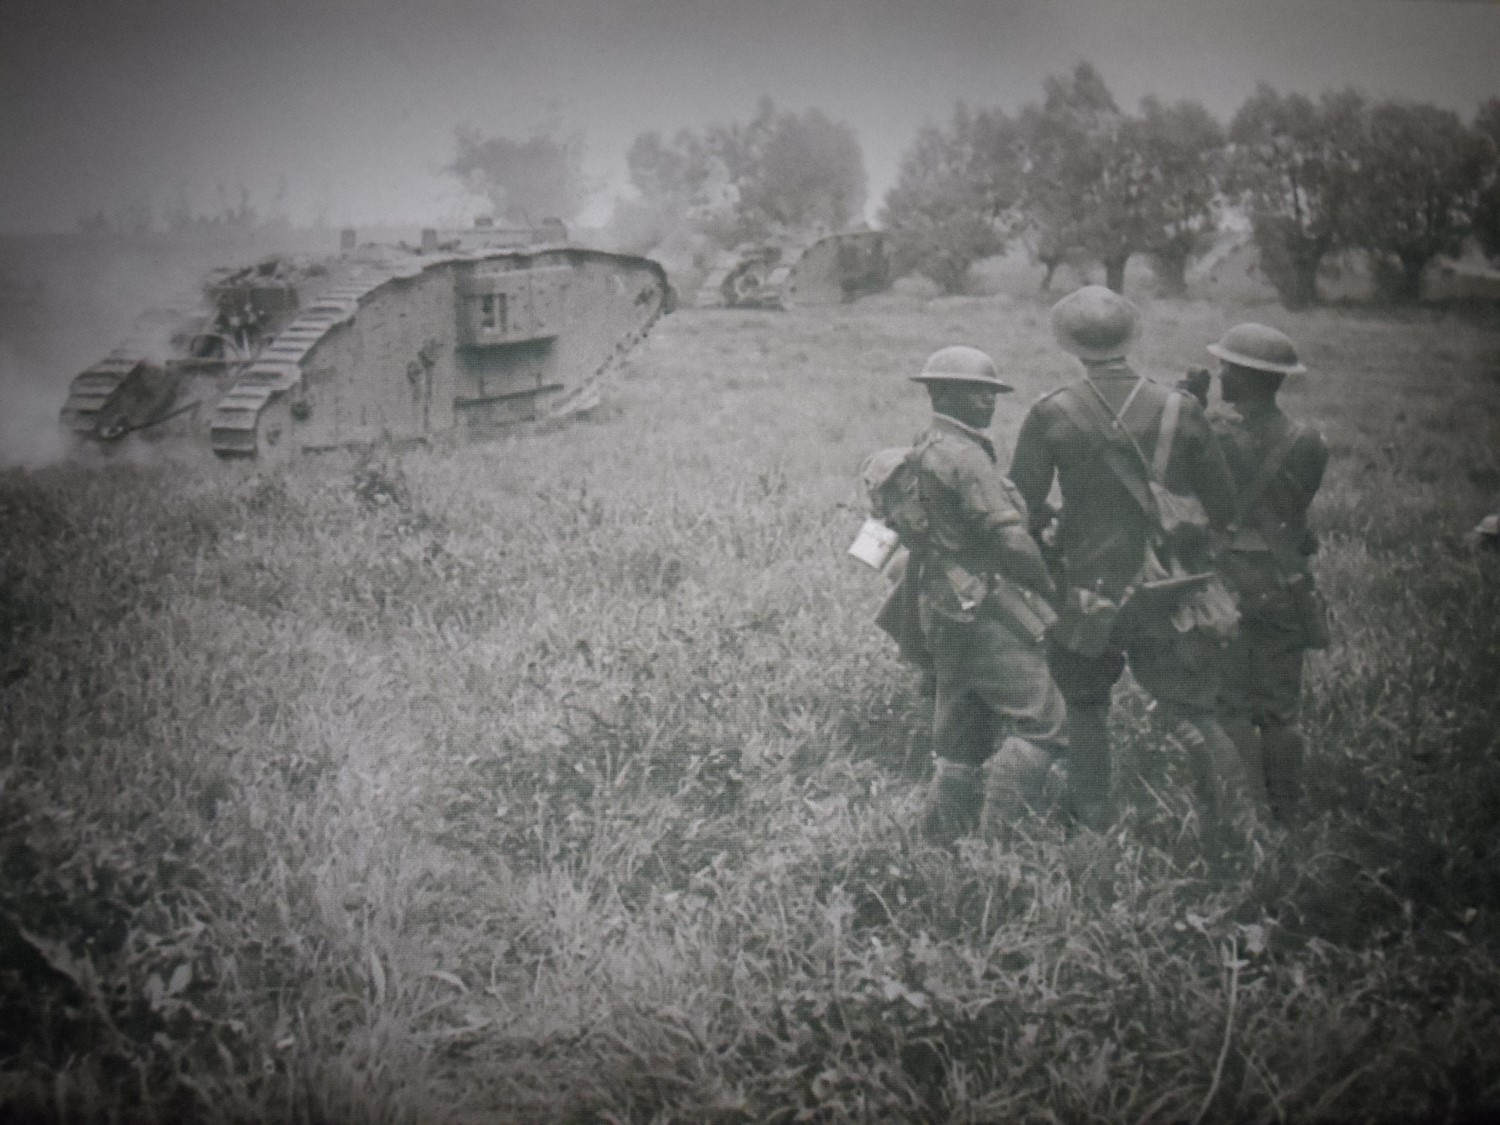 WW I Tanks Photograph on display in the Tourist Information Center